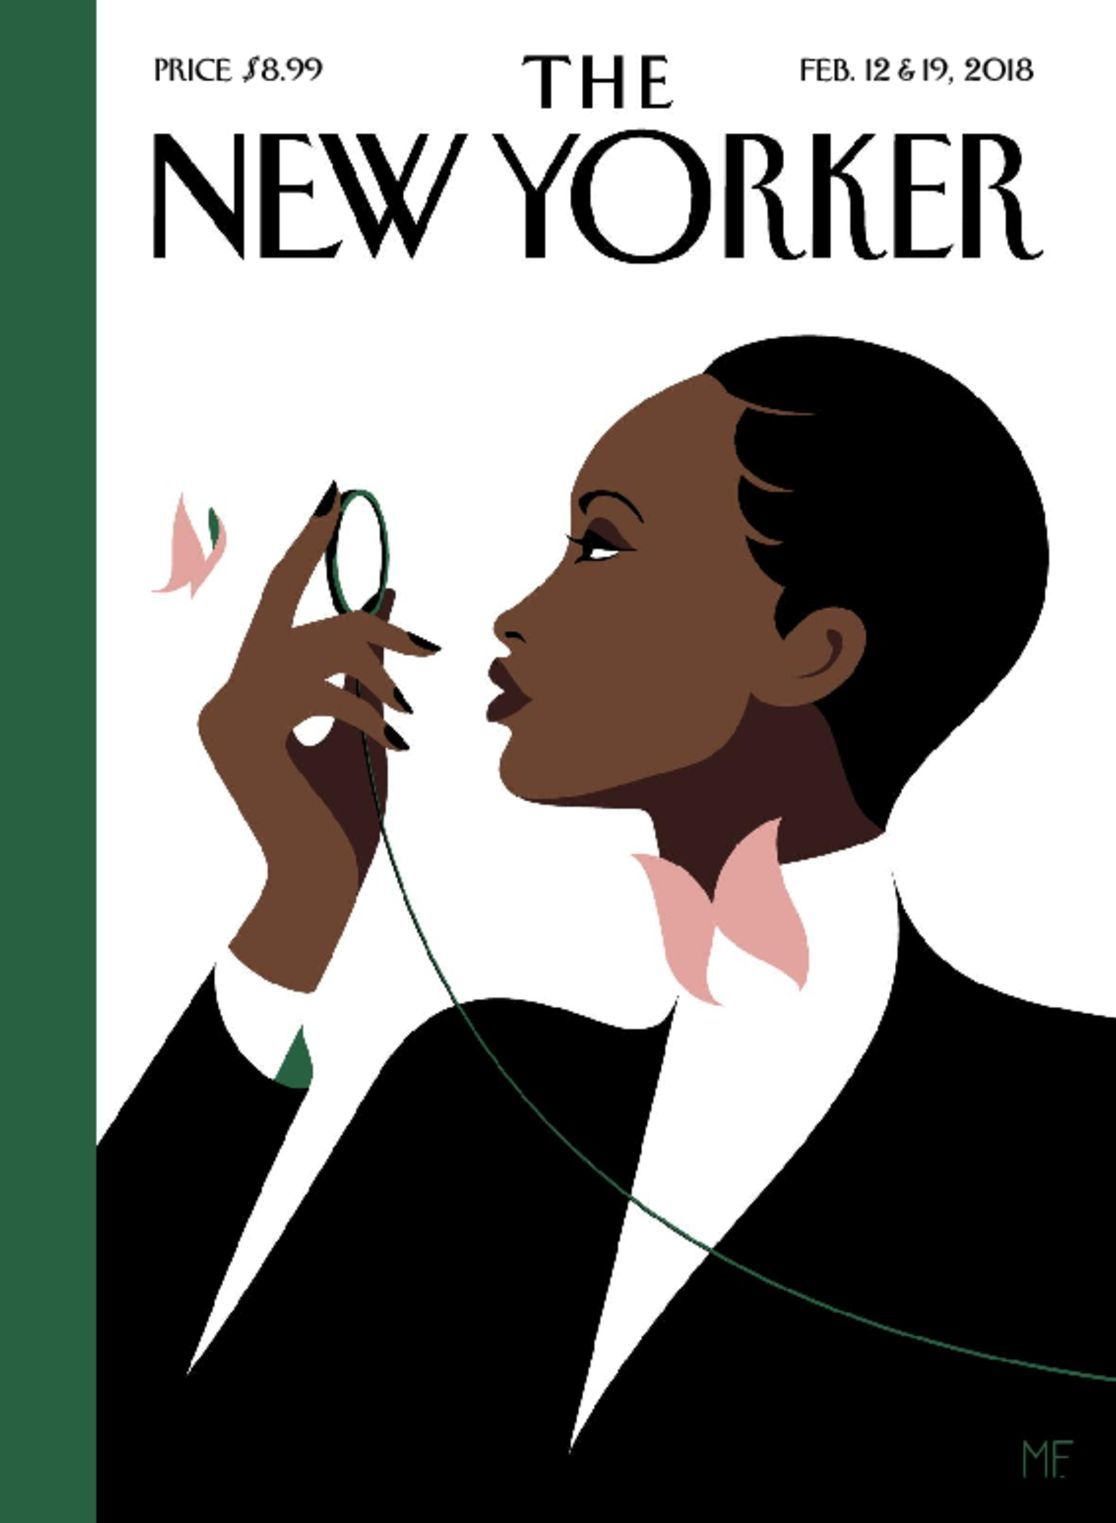 The New Yorker Food Issue